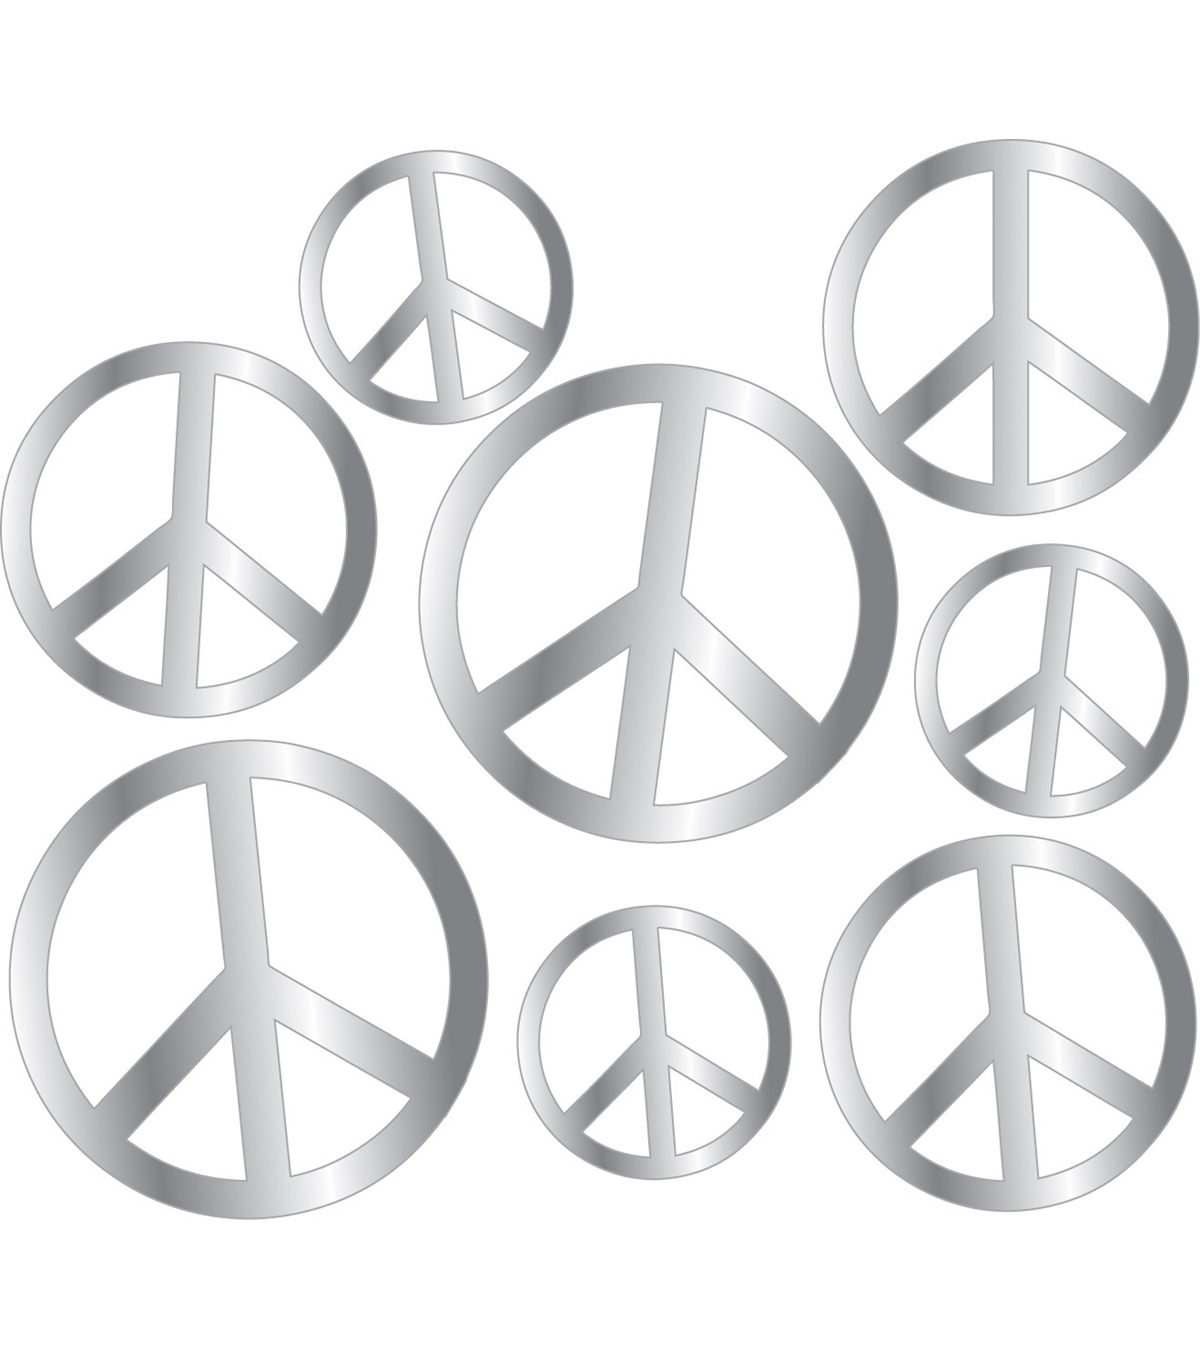 MINI 3D PEEL STICK PEACE MIRROR